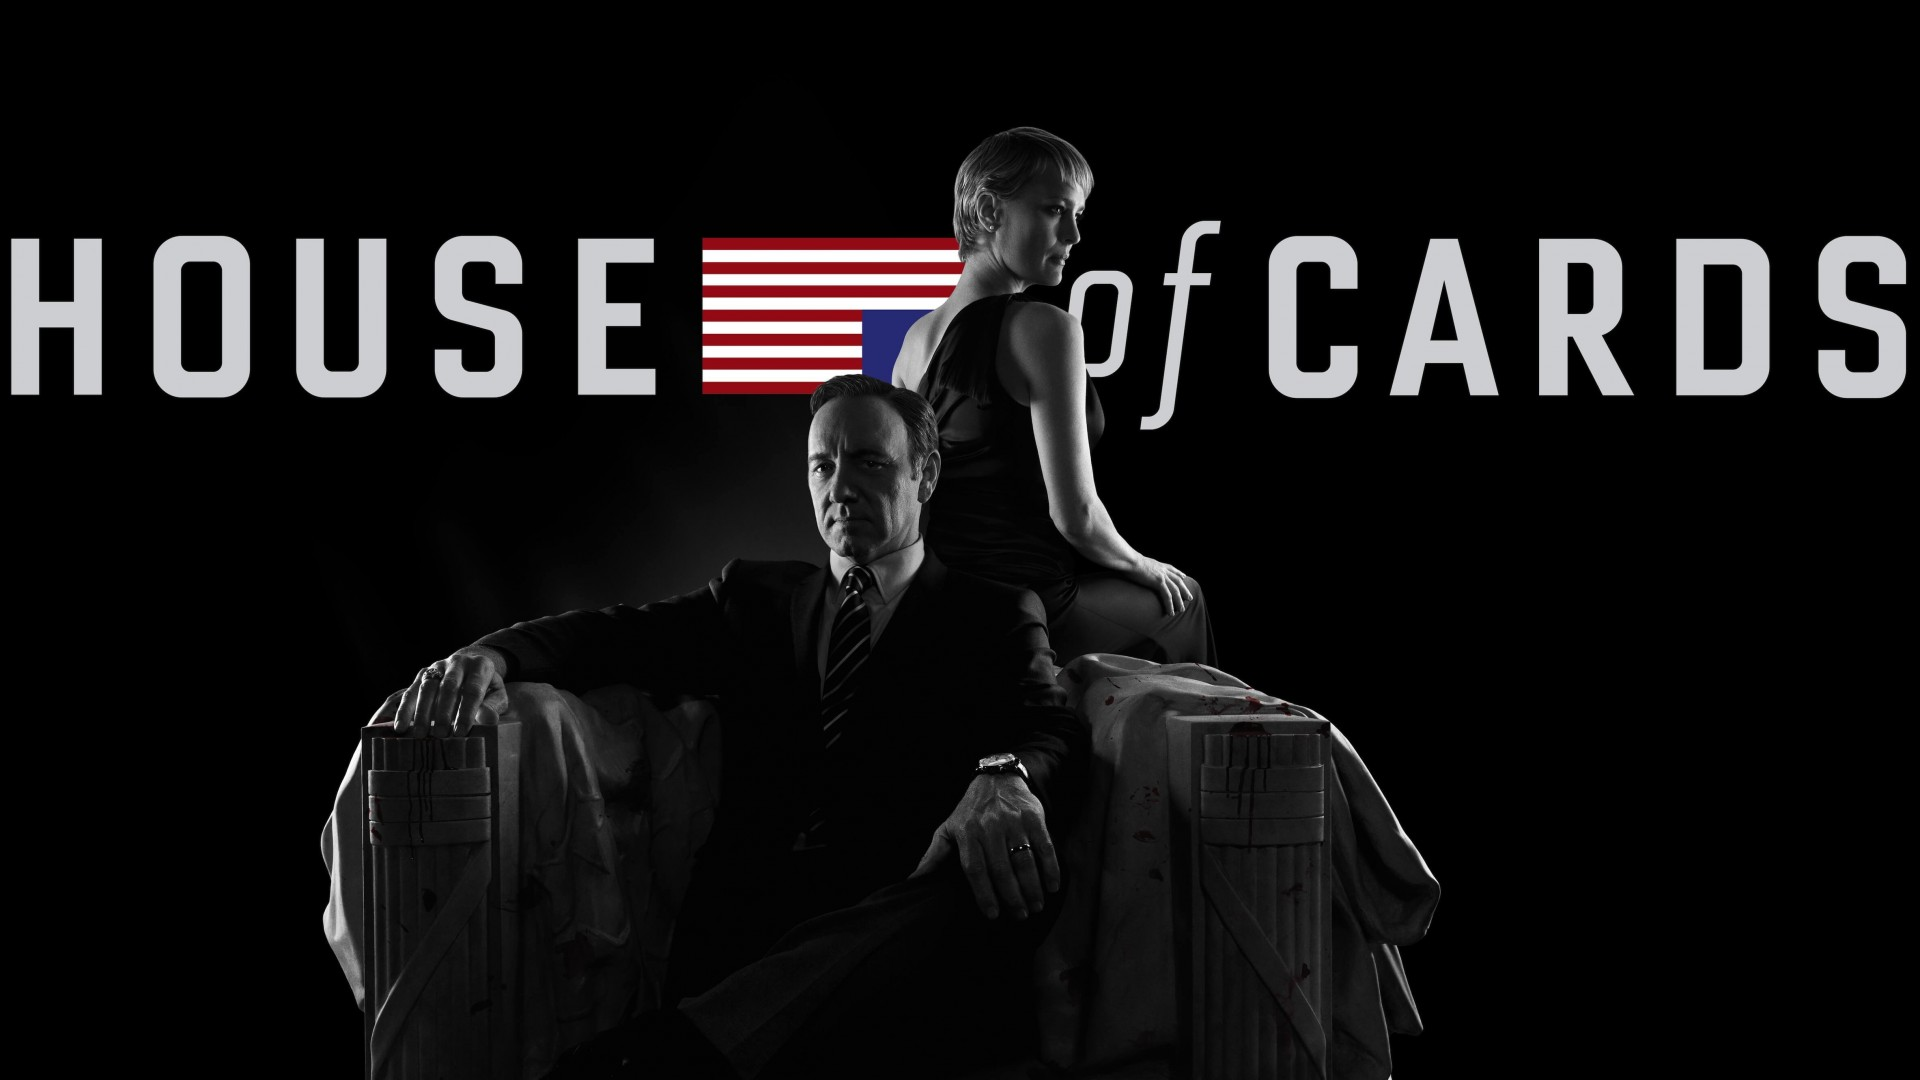 House of Cards - Black & White Wallpaper for Desktop 1920x1080